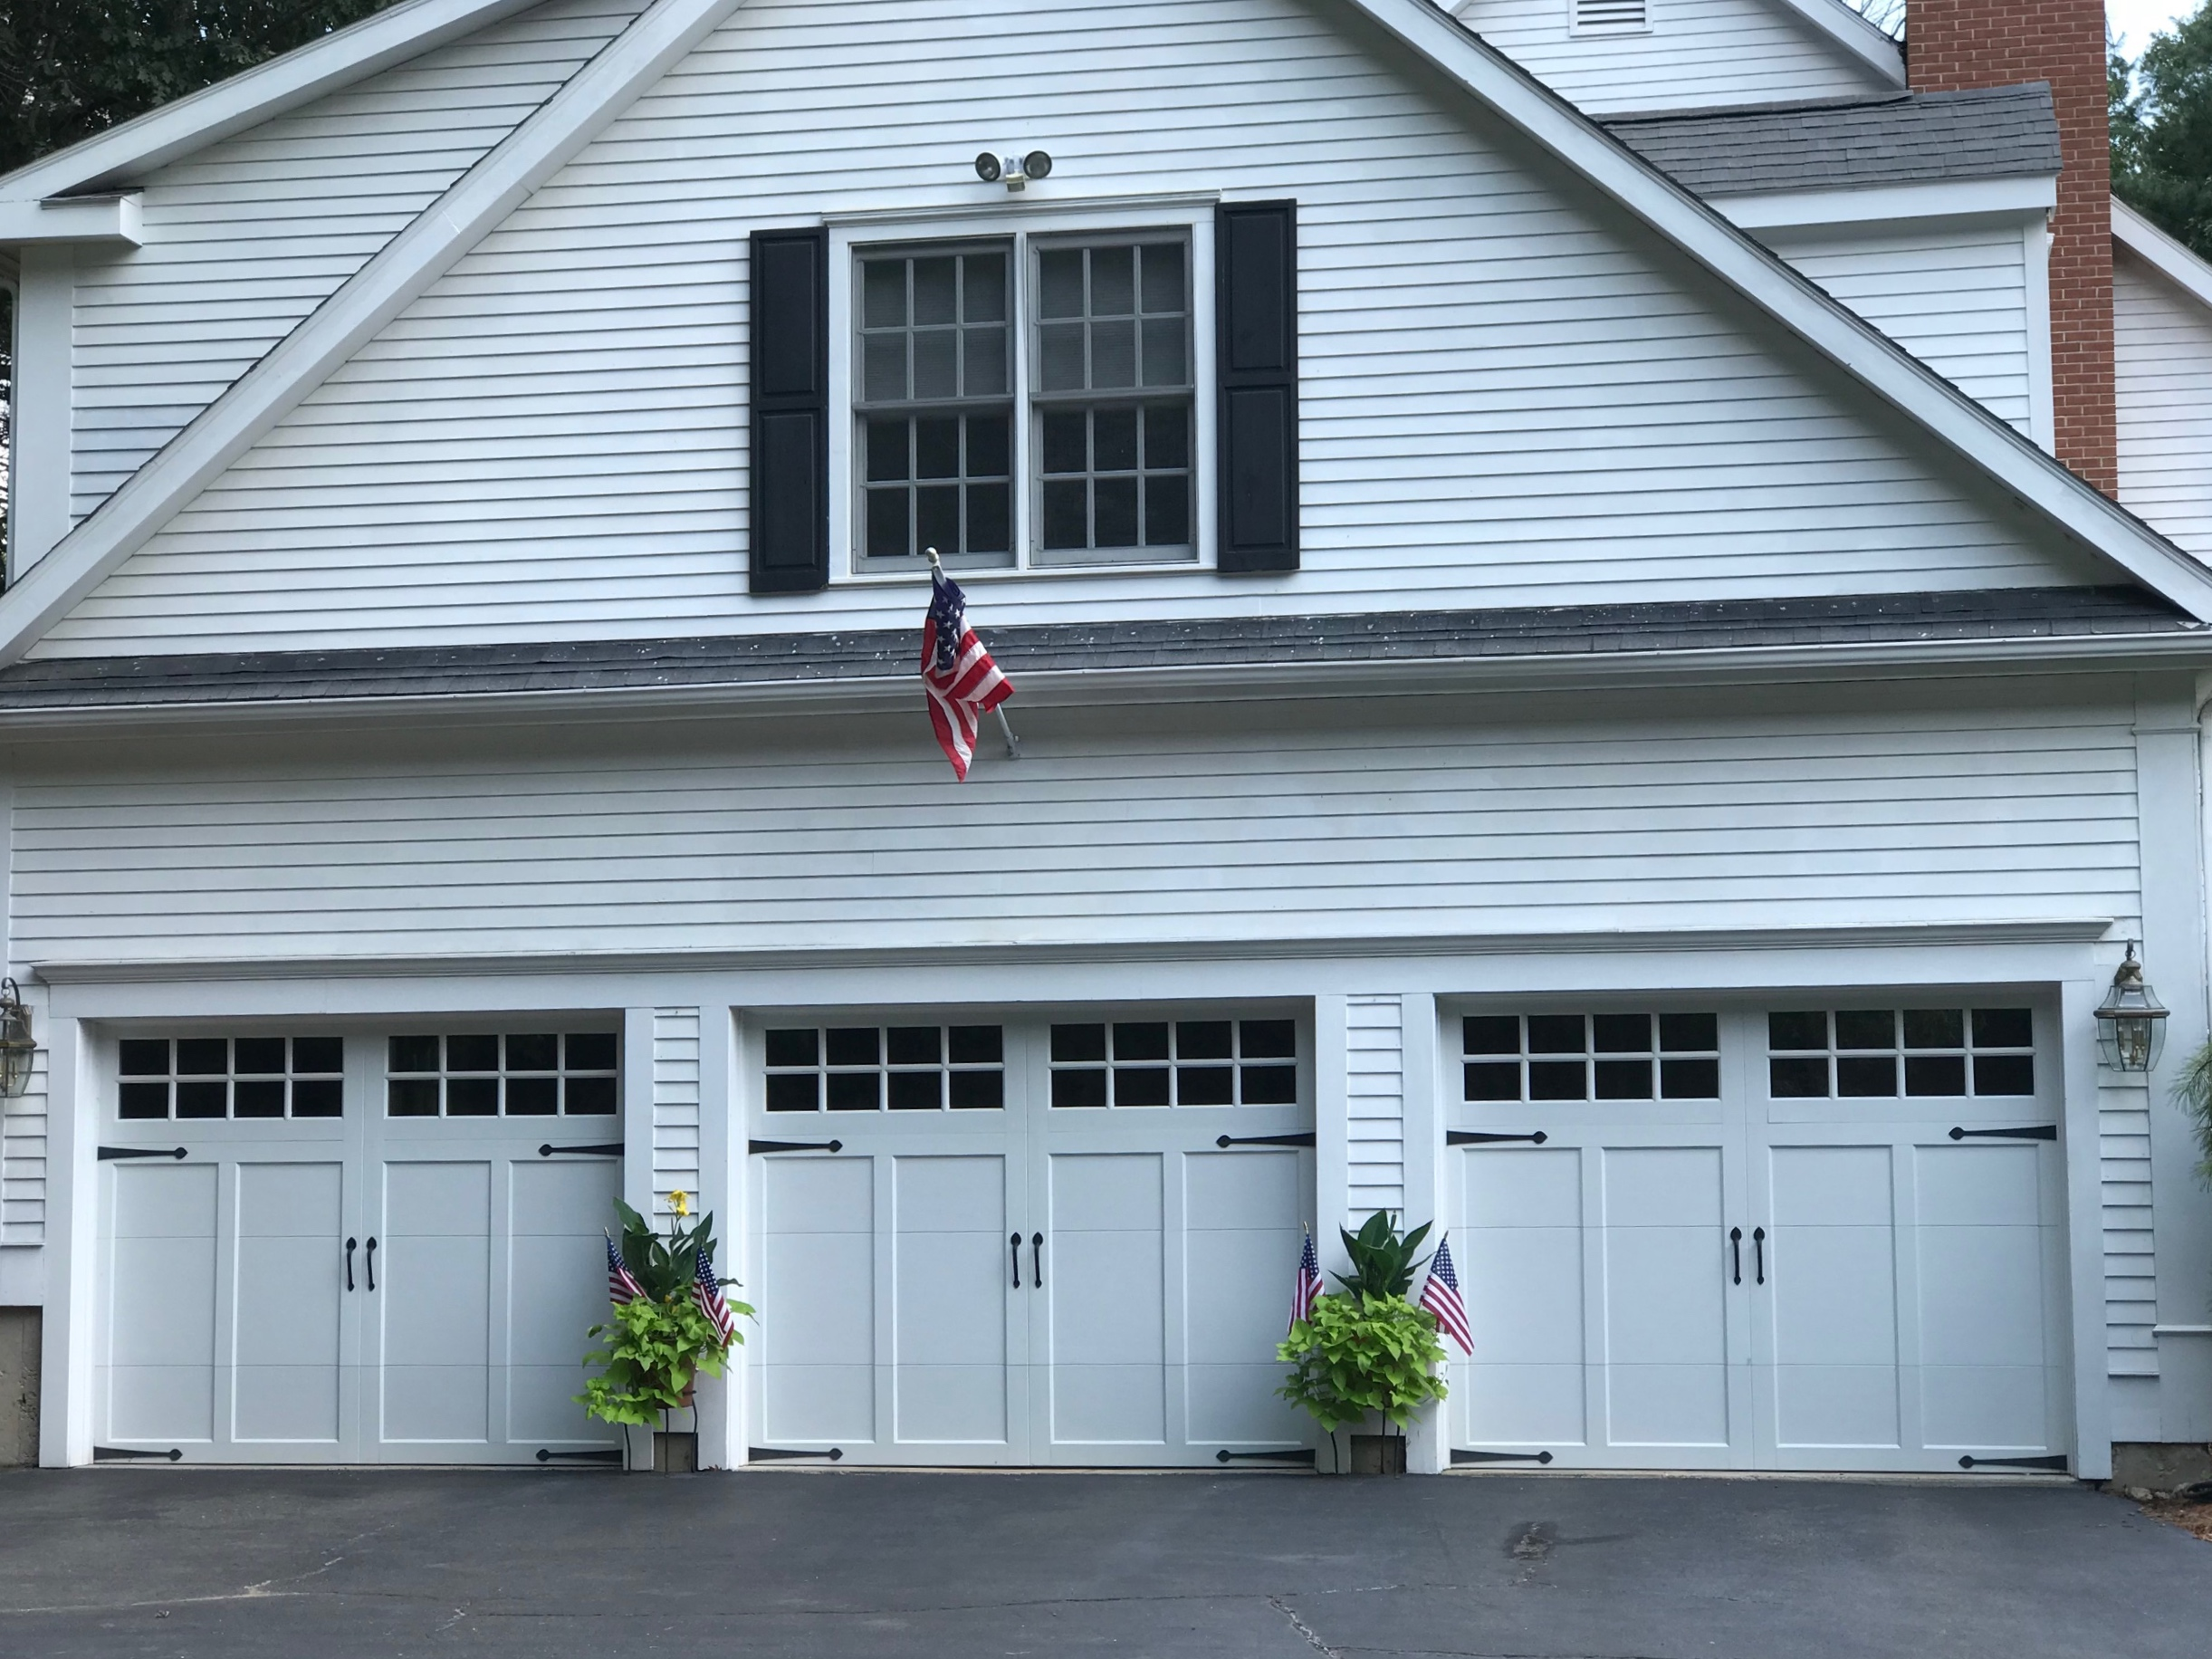 White Three Door Carriage House Style Garage with decorative hardware and windows